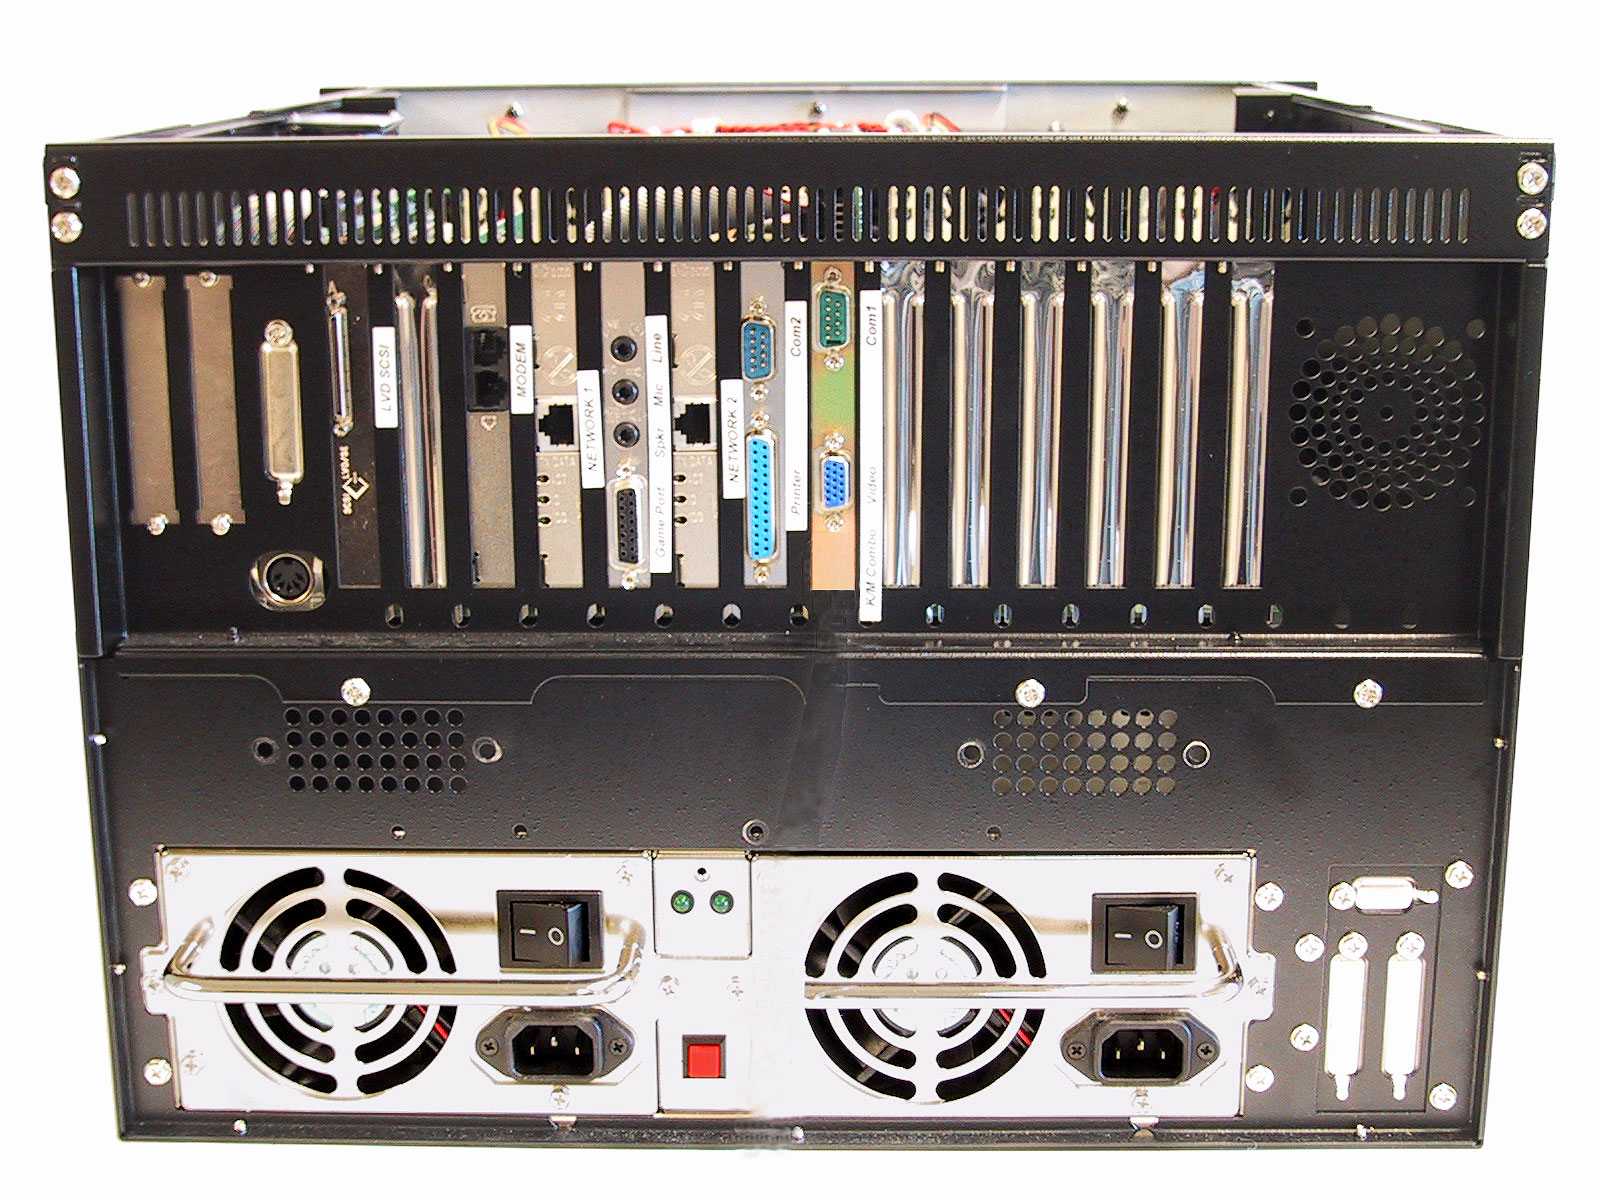 AD-827 7U Industrial Rack Mount Computer Rear